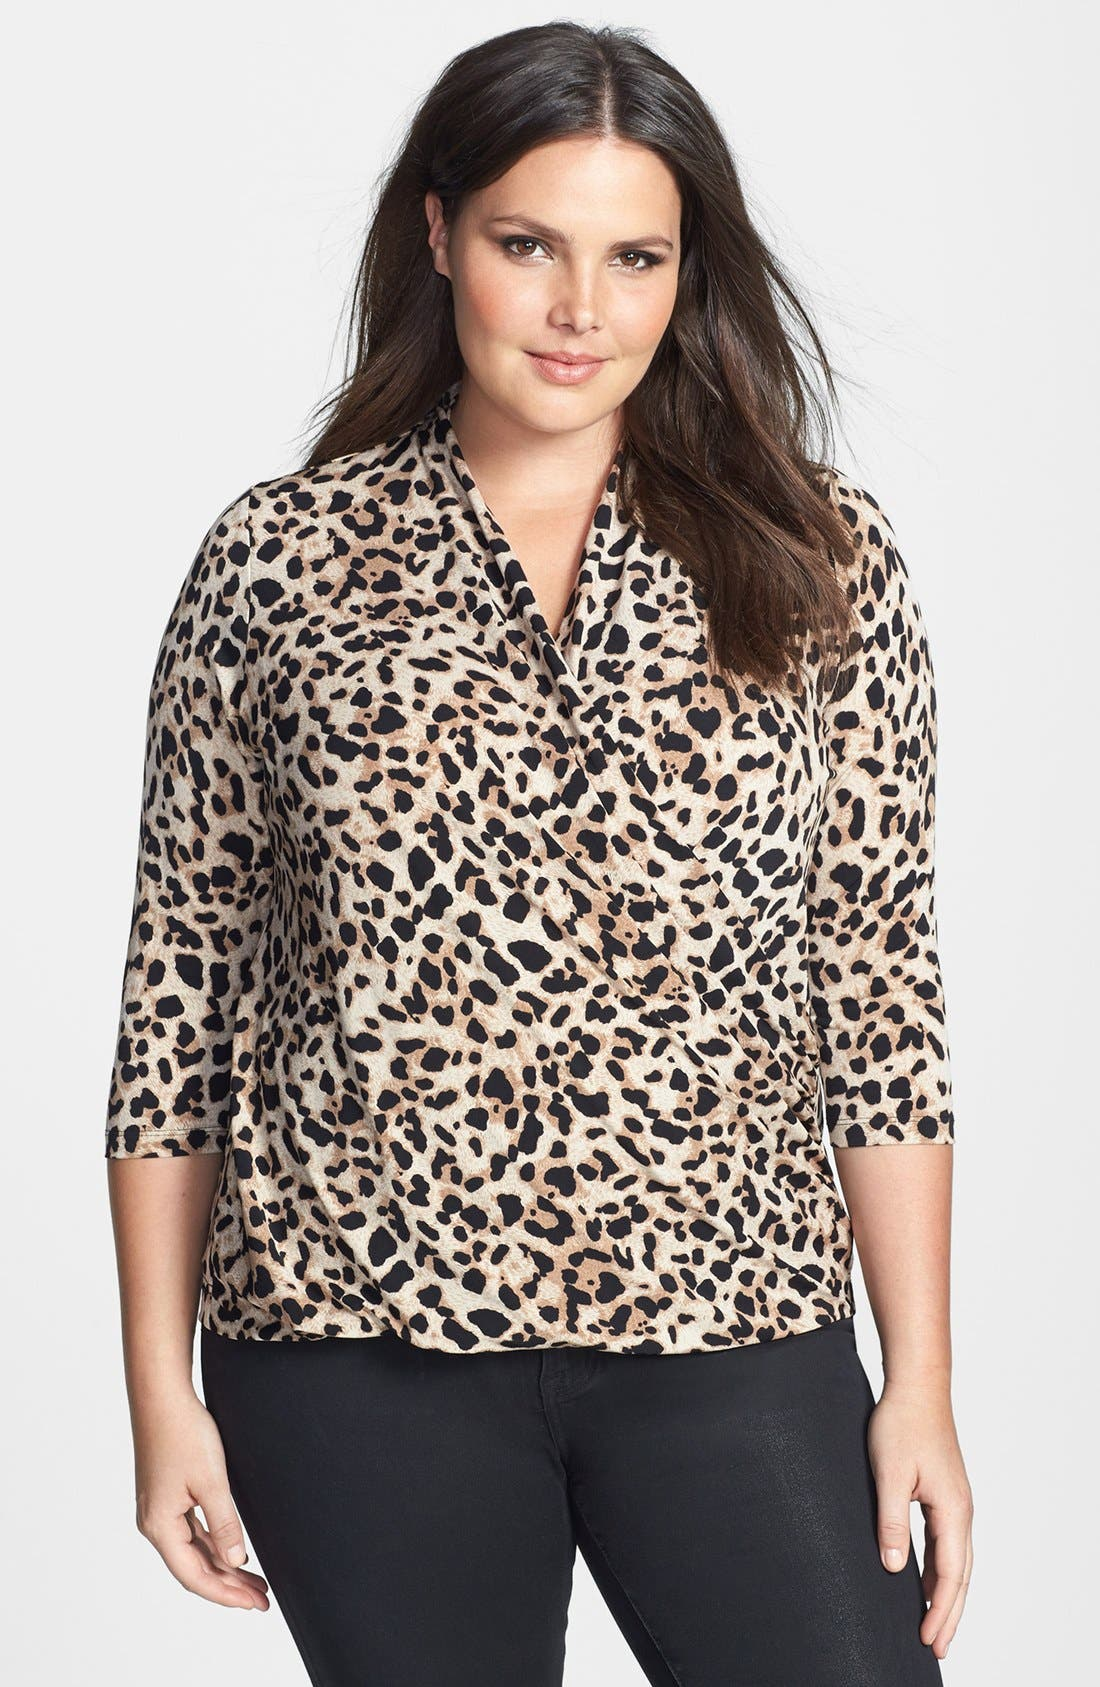 Alternate Image 1 Selected - Vince Camuto Animal Print Faux Wrap Top (Plus Size)